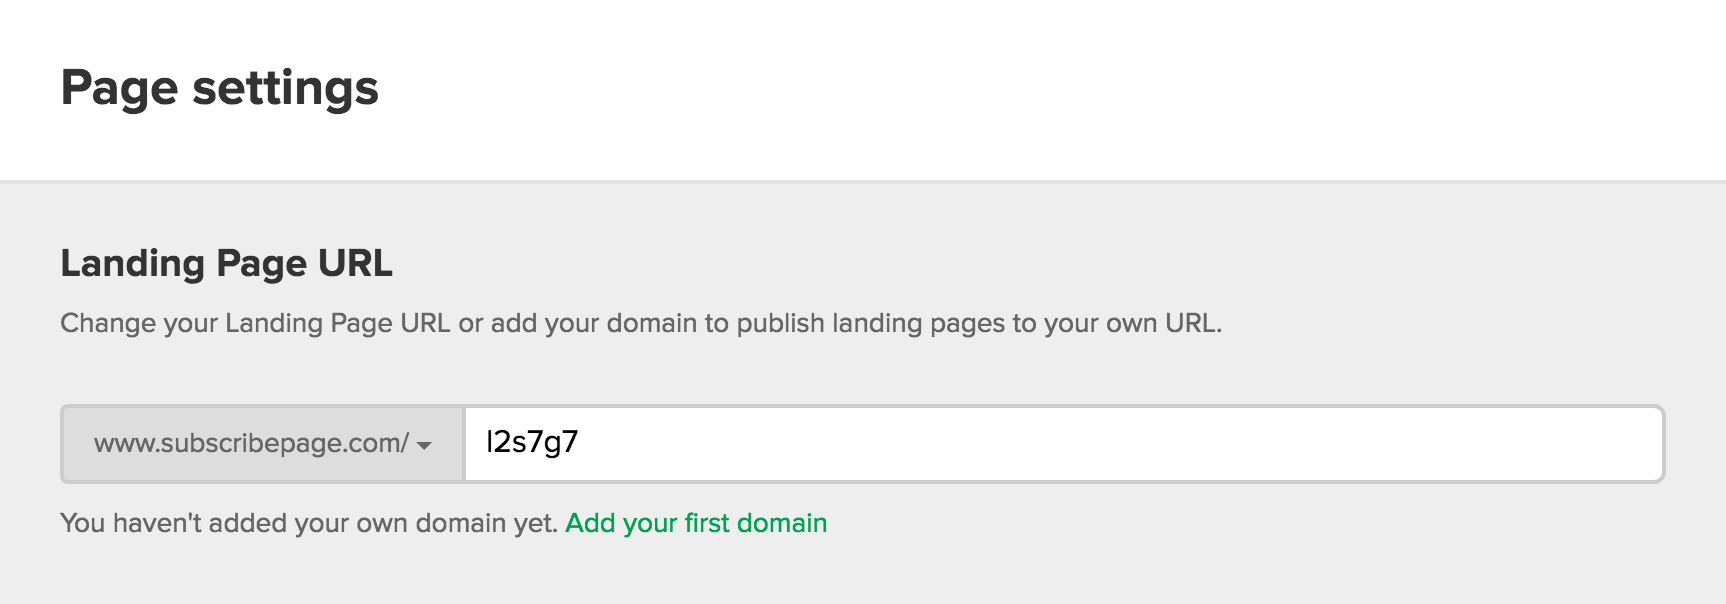 mailerlite how to add a custom domain for my landing pagethis random part after the slash serves to separate different landing pages on www subscribepage com as all our landing pages are there by default